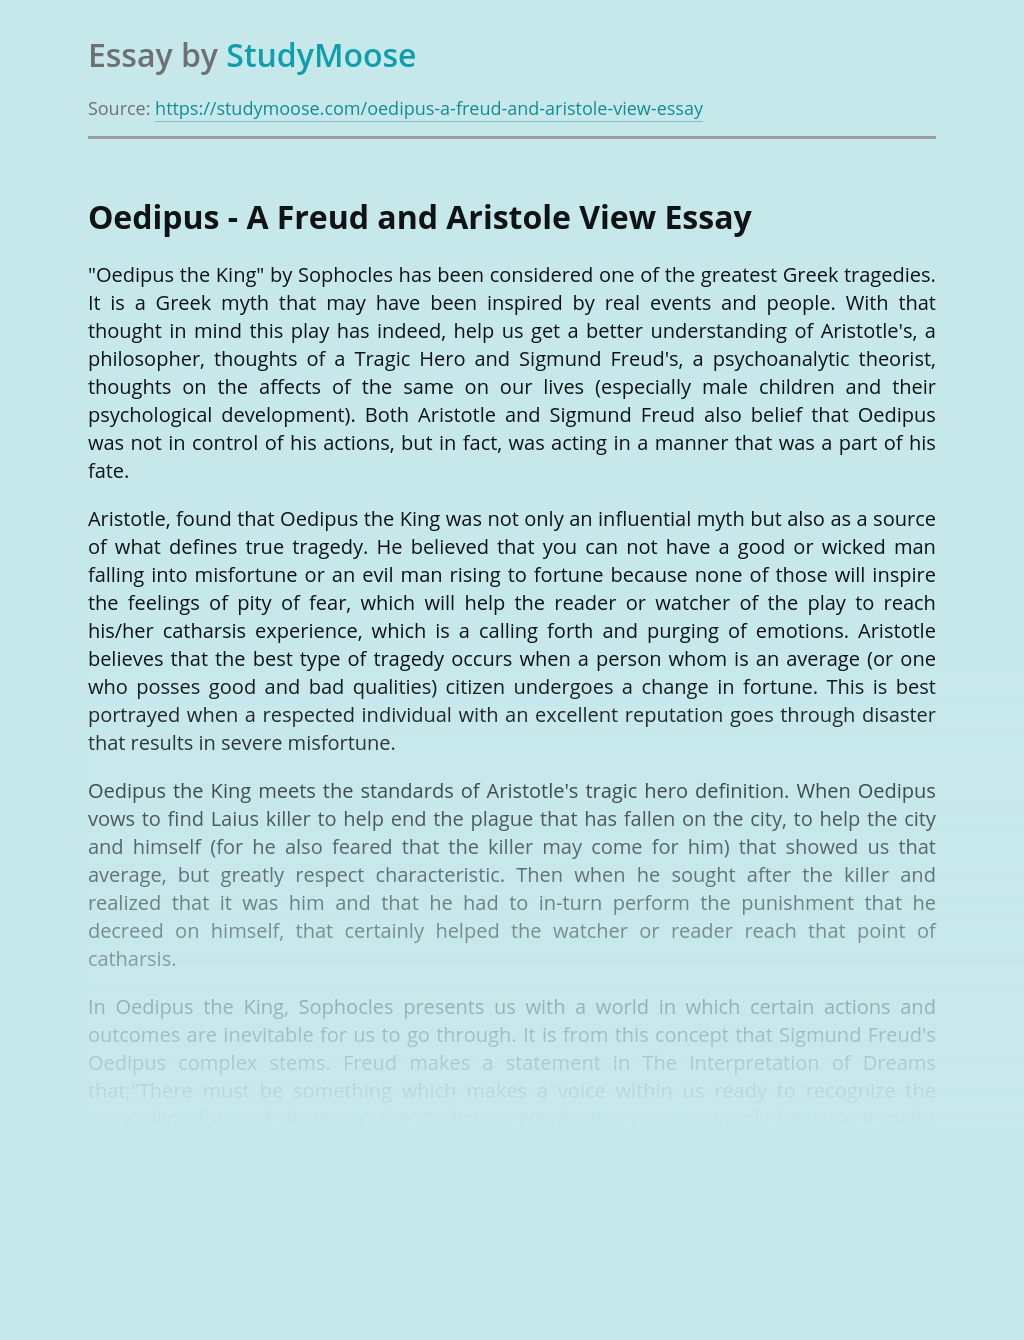 Oedipus - A Freud and Aristole View